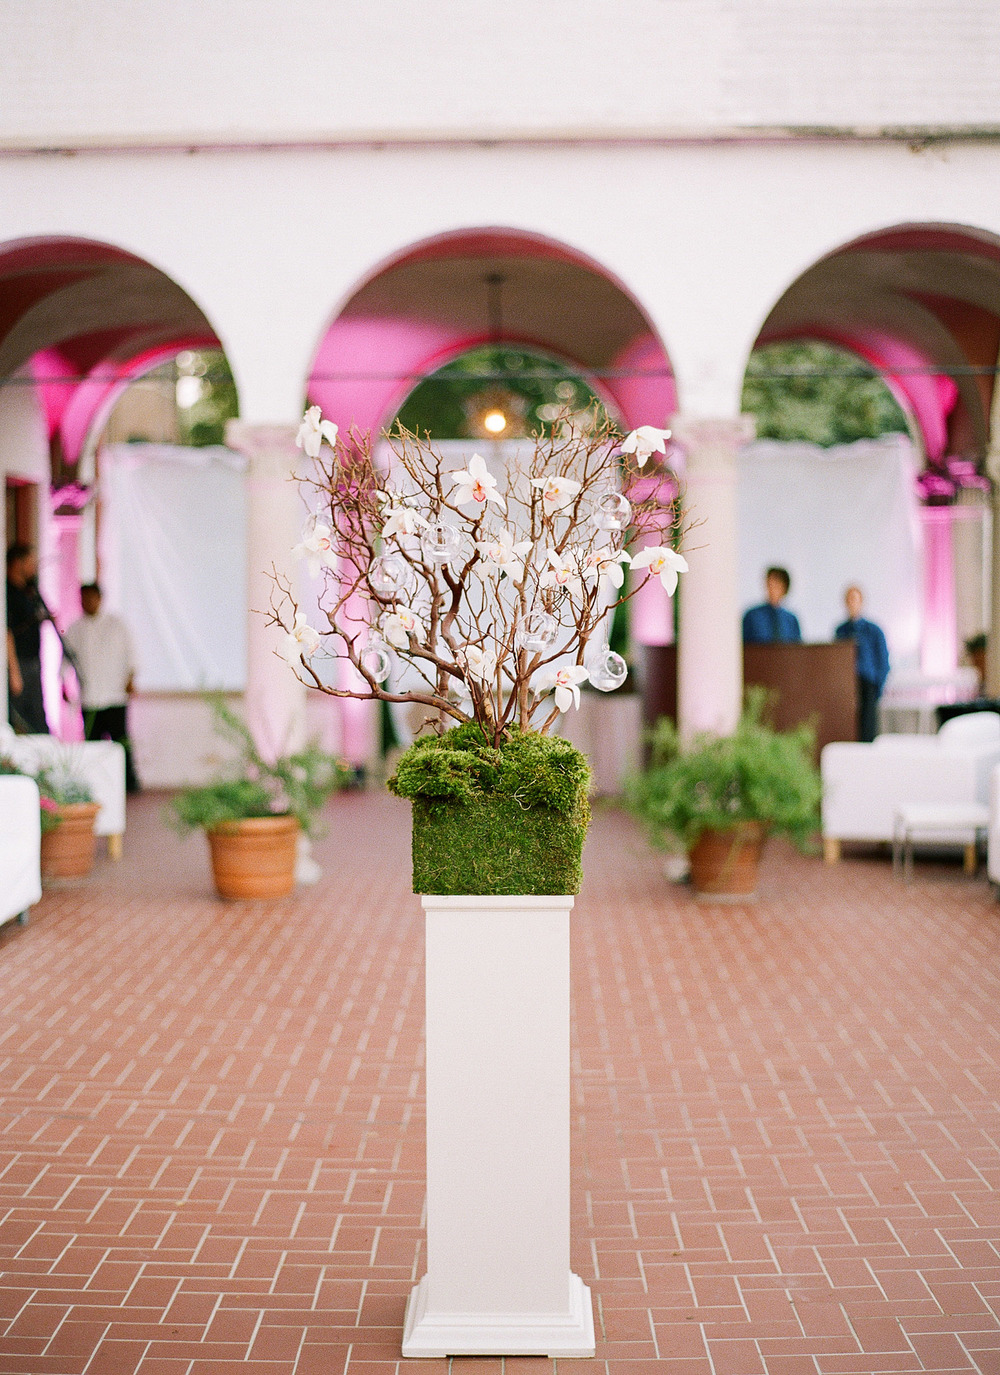 moss floral arrangements at the Italian Destination Wedding at the Villa Terrace - a favorite wedding venue of Destination wedding photographer, lexia frank, who is a film photographer for luxury weddings